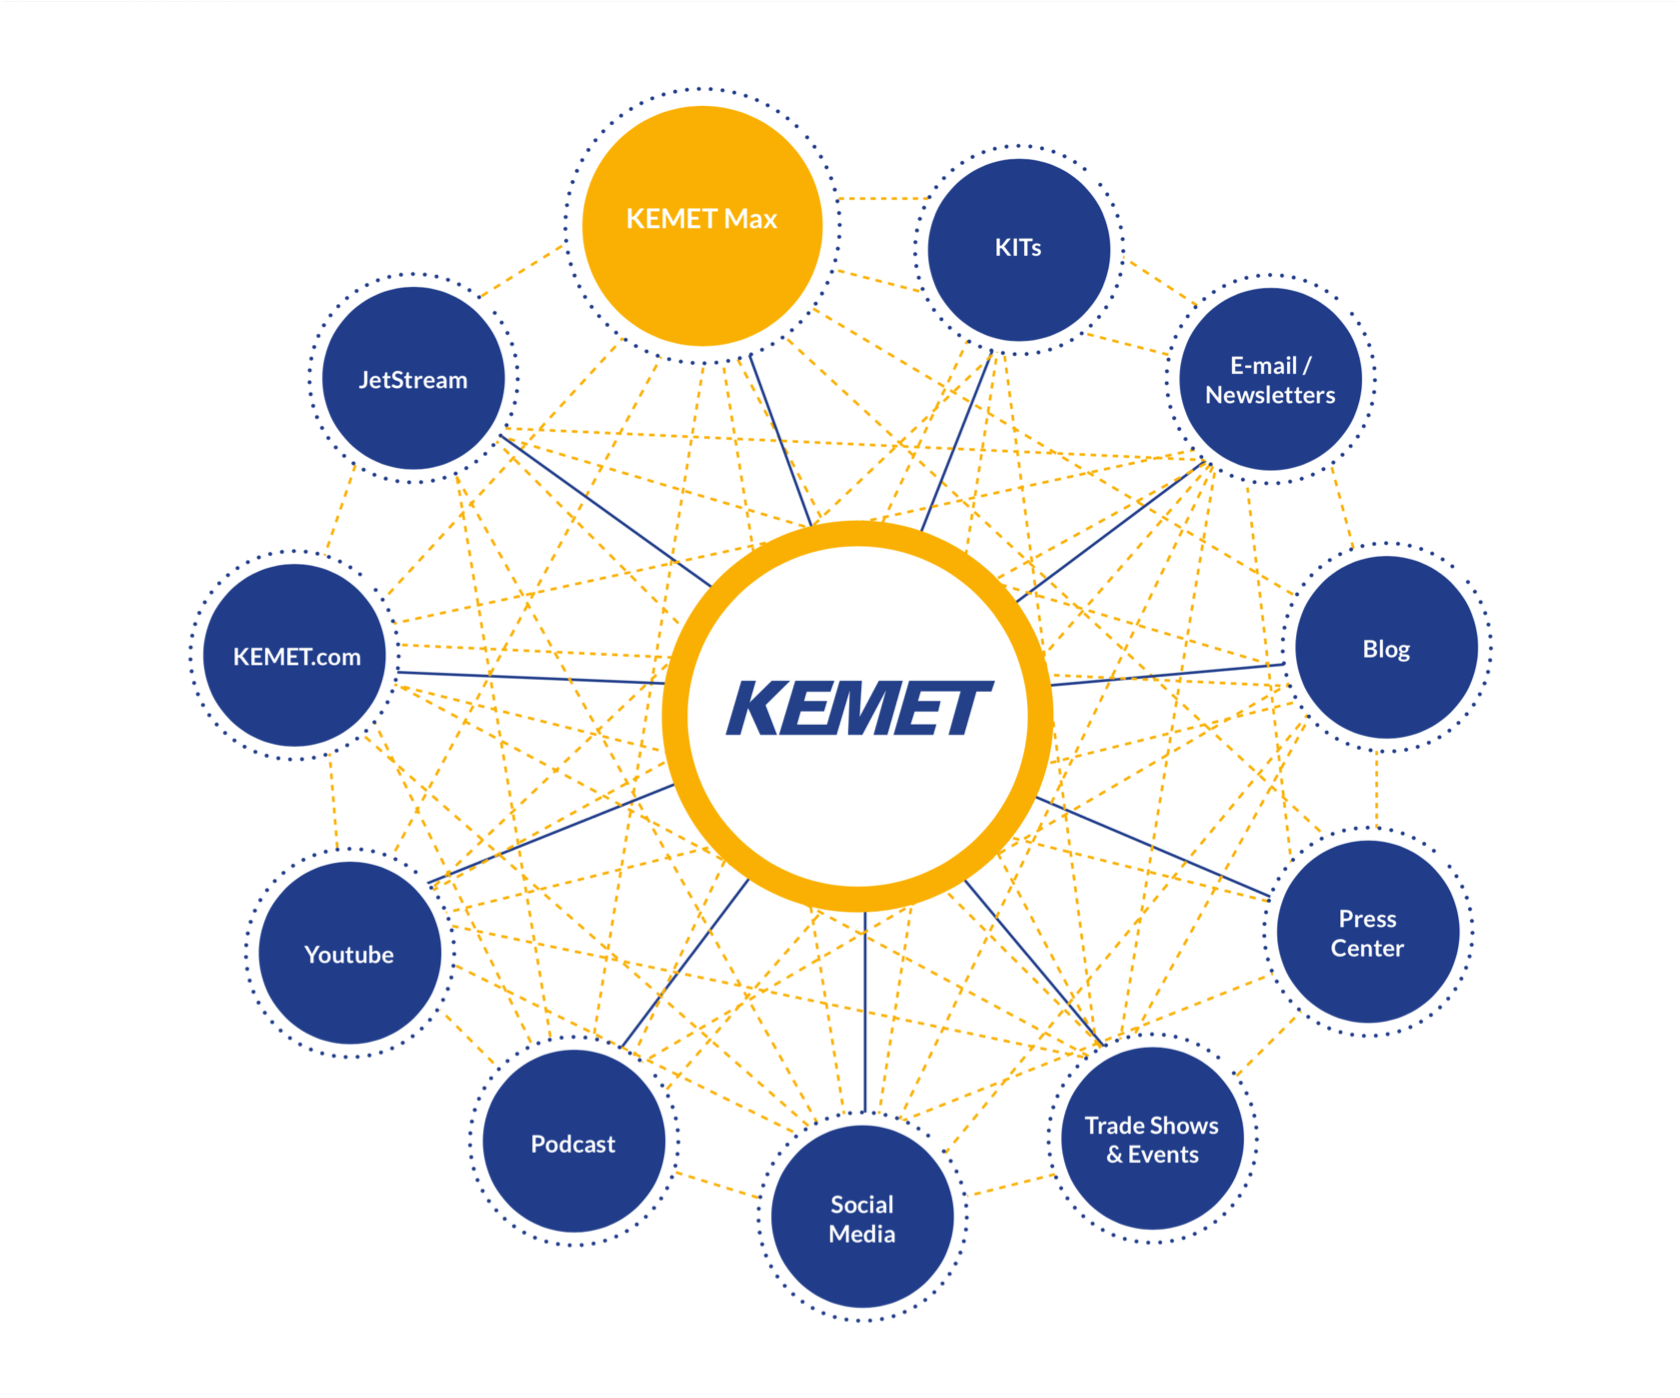 Diagram showing how KEMET Max fits in the overall ecosystems of KEMET.